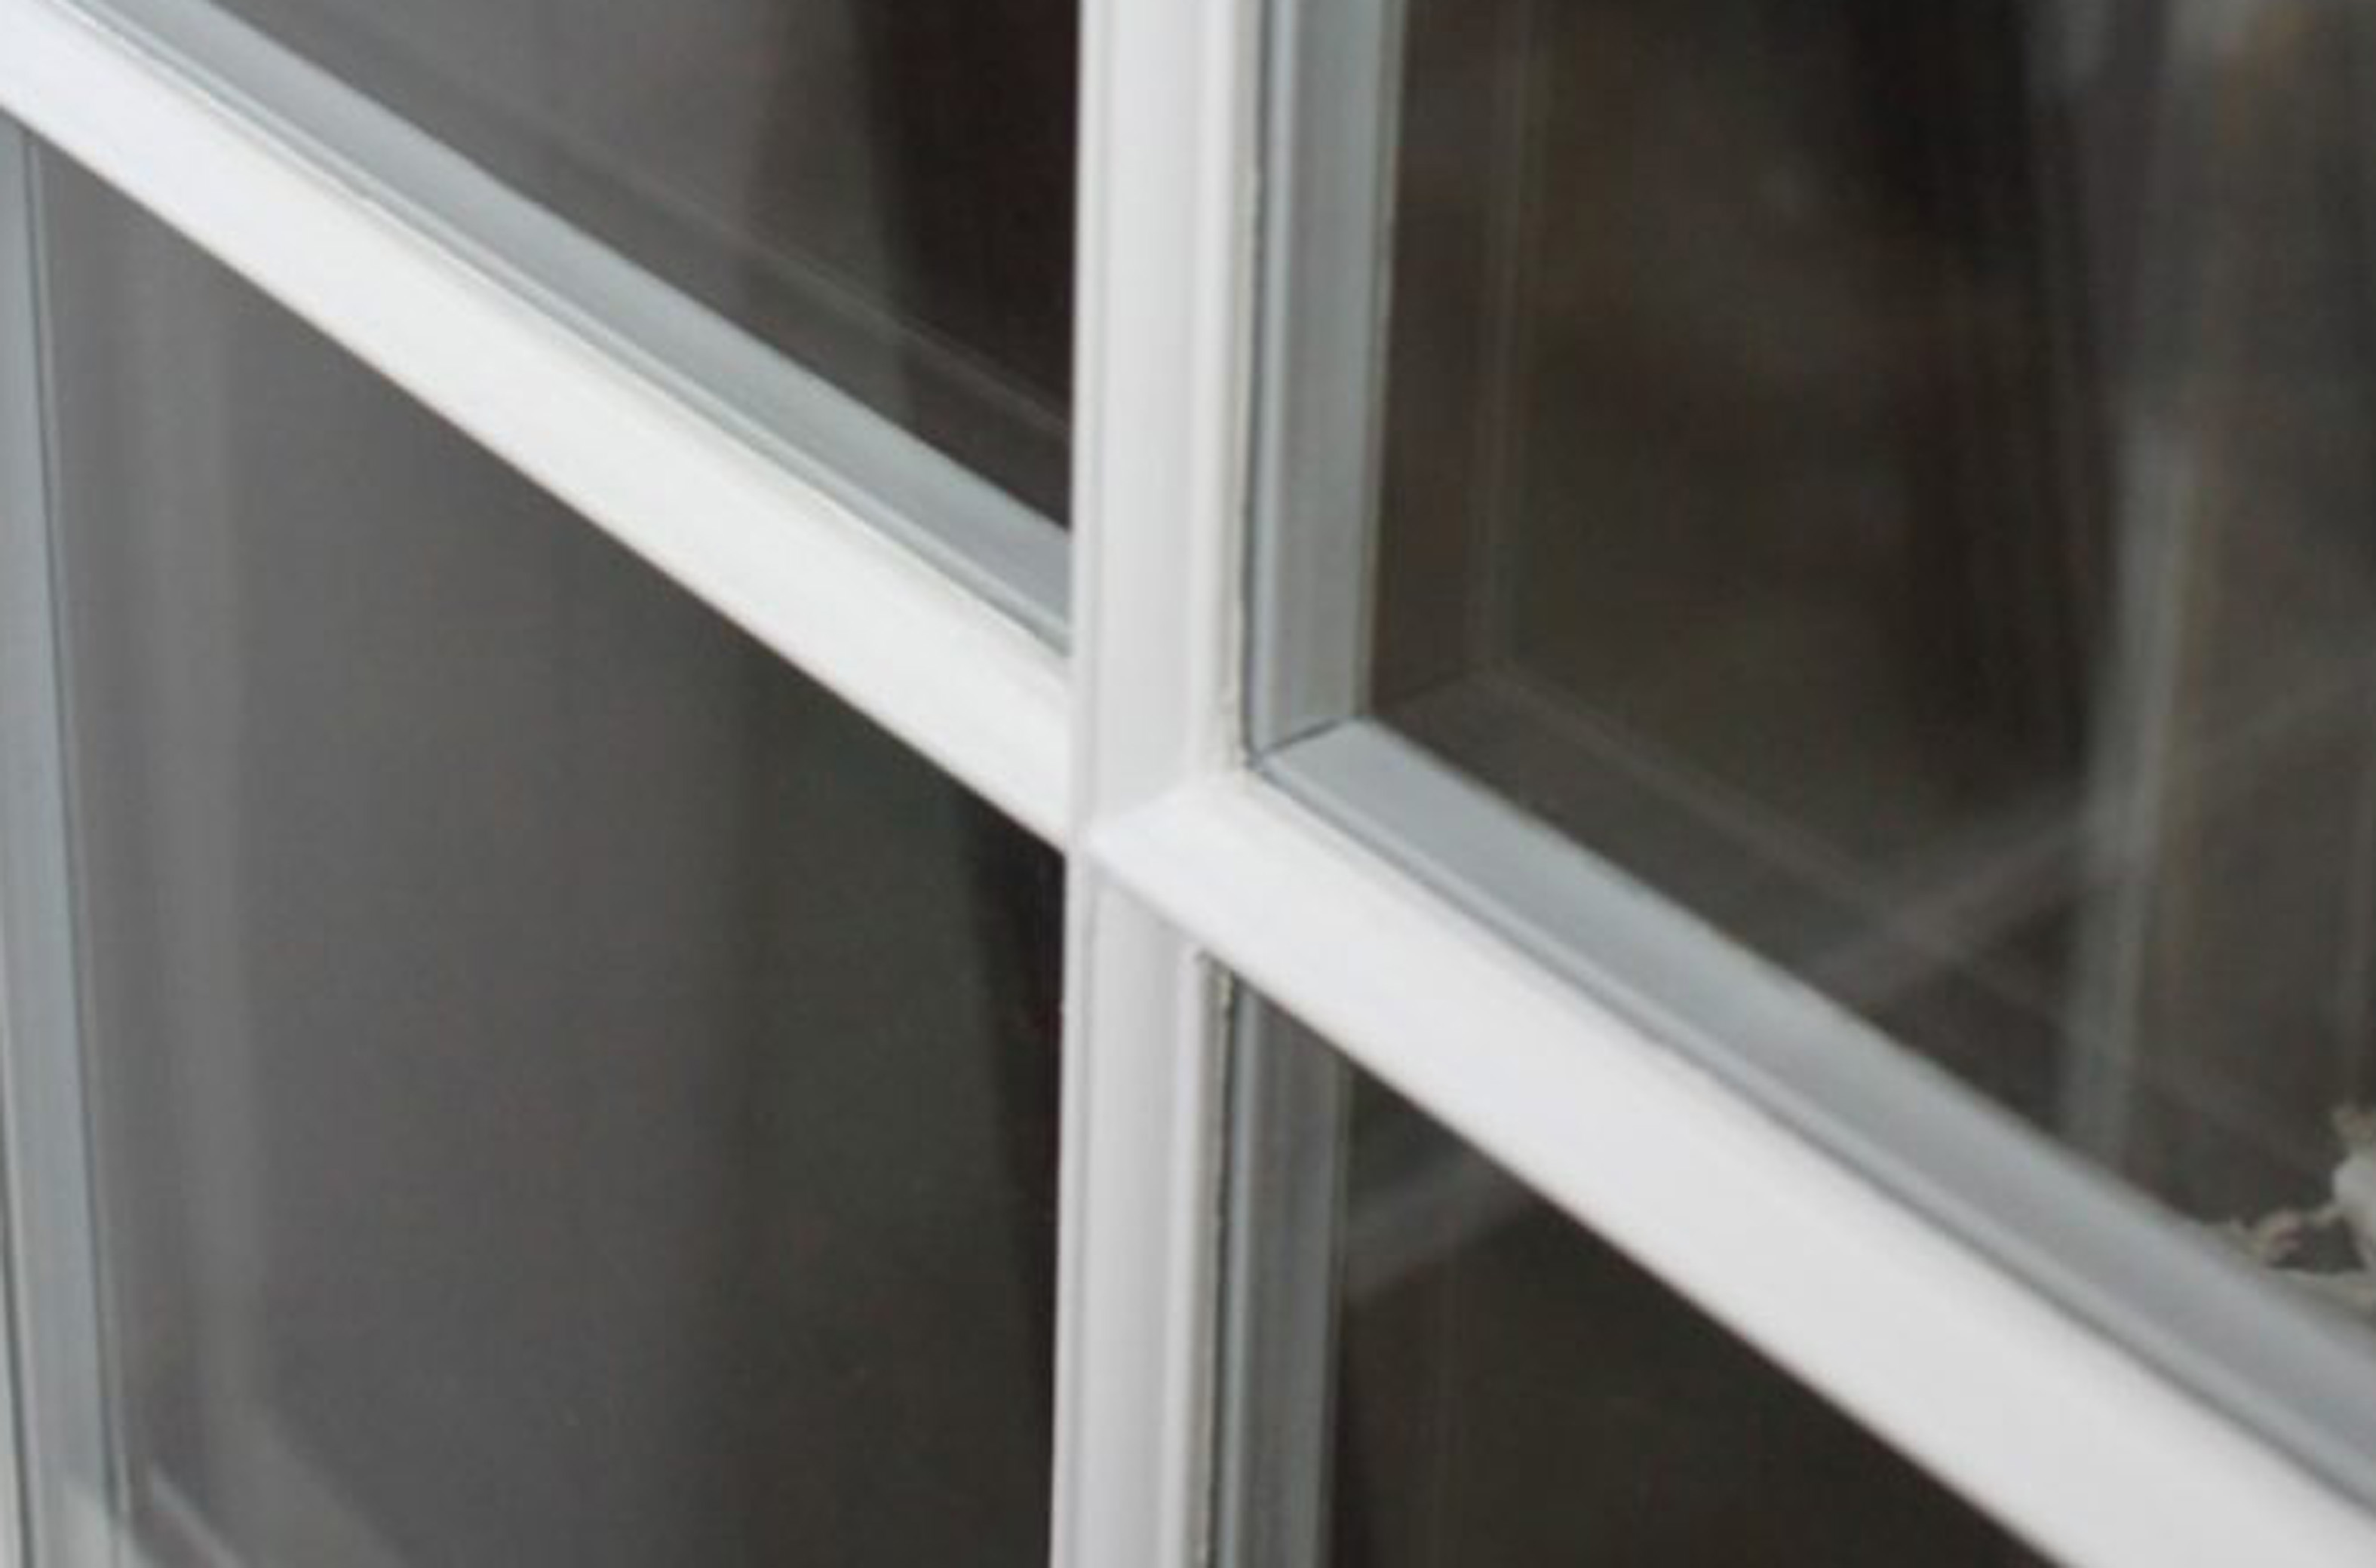 Core Sash Windows Low Emissivity Double Glazed Units